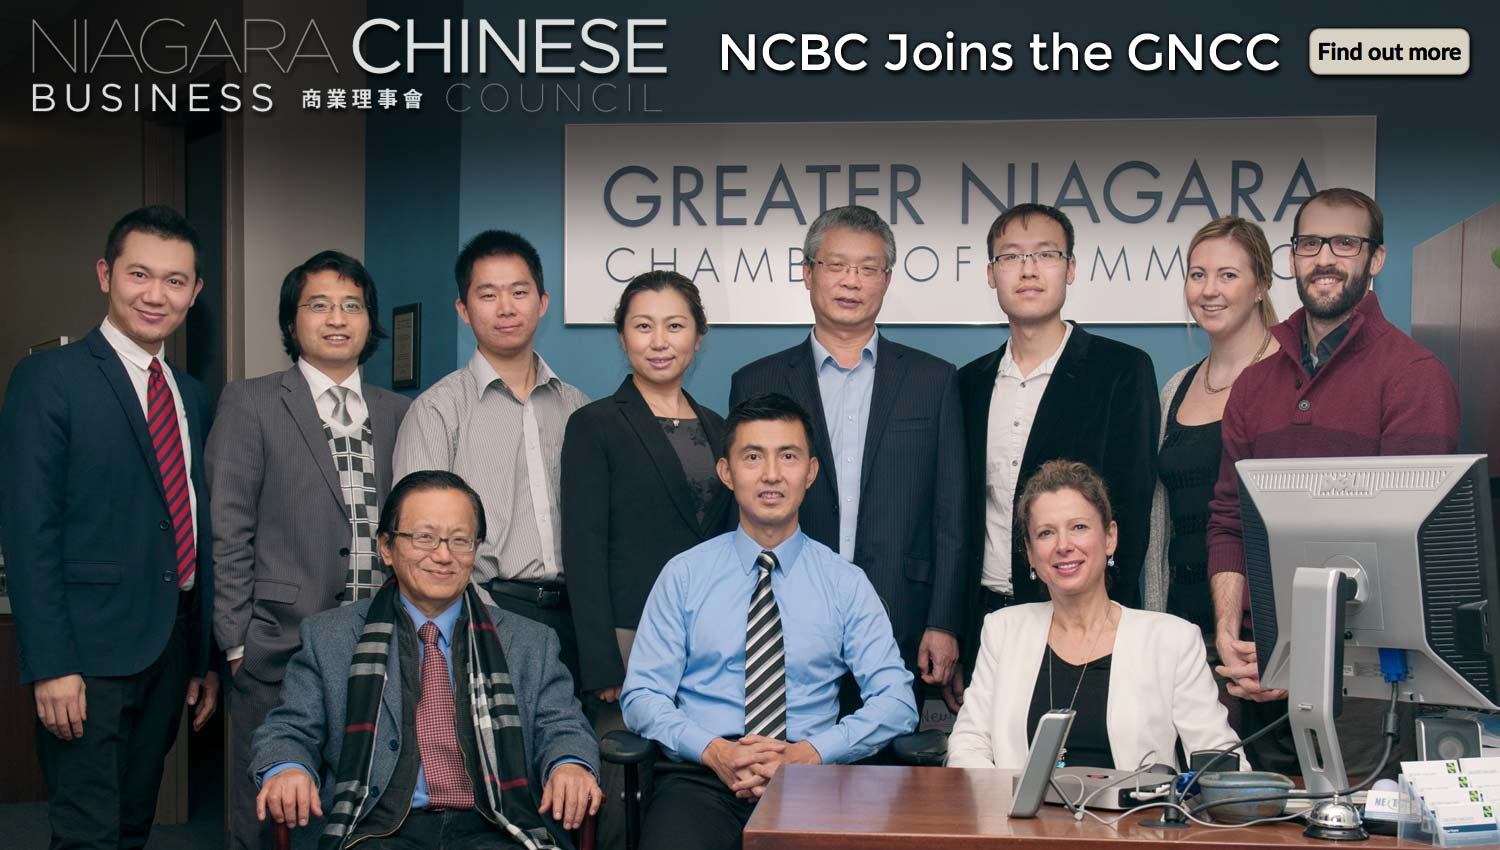 Niagara Chinese Business Council joins the GNCC